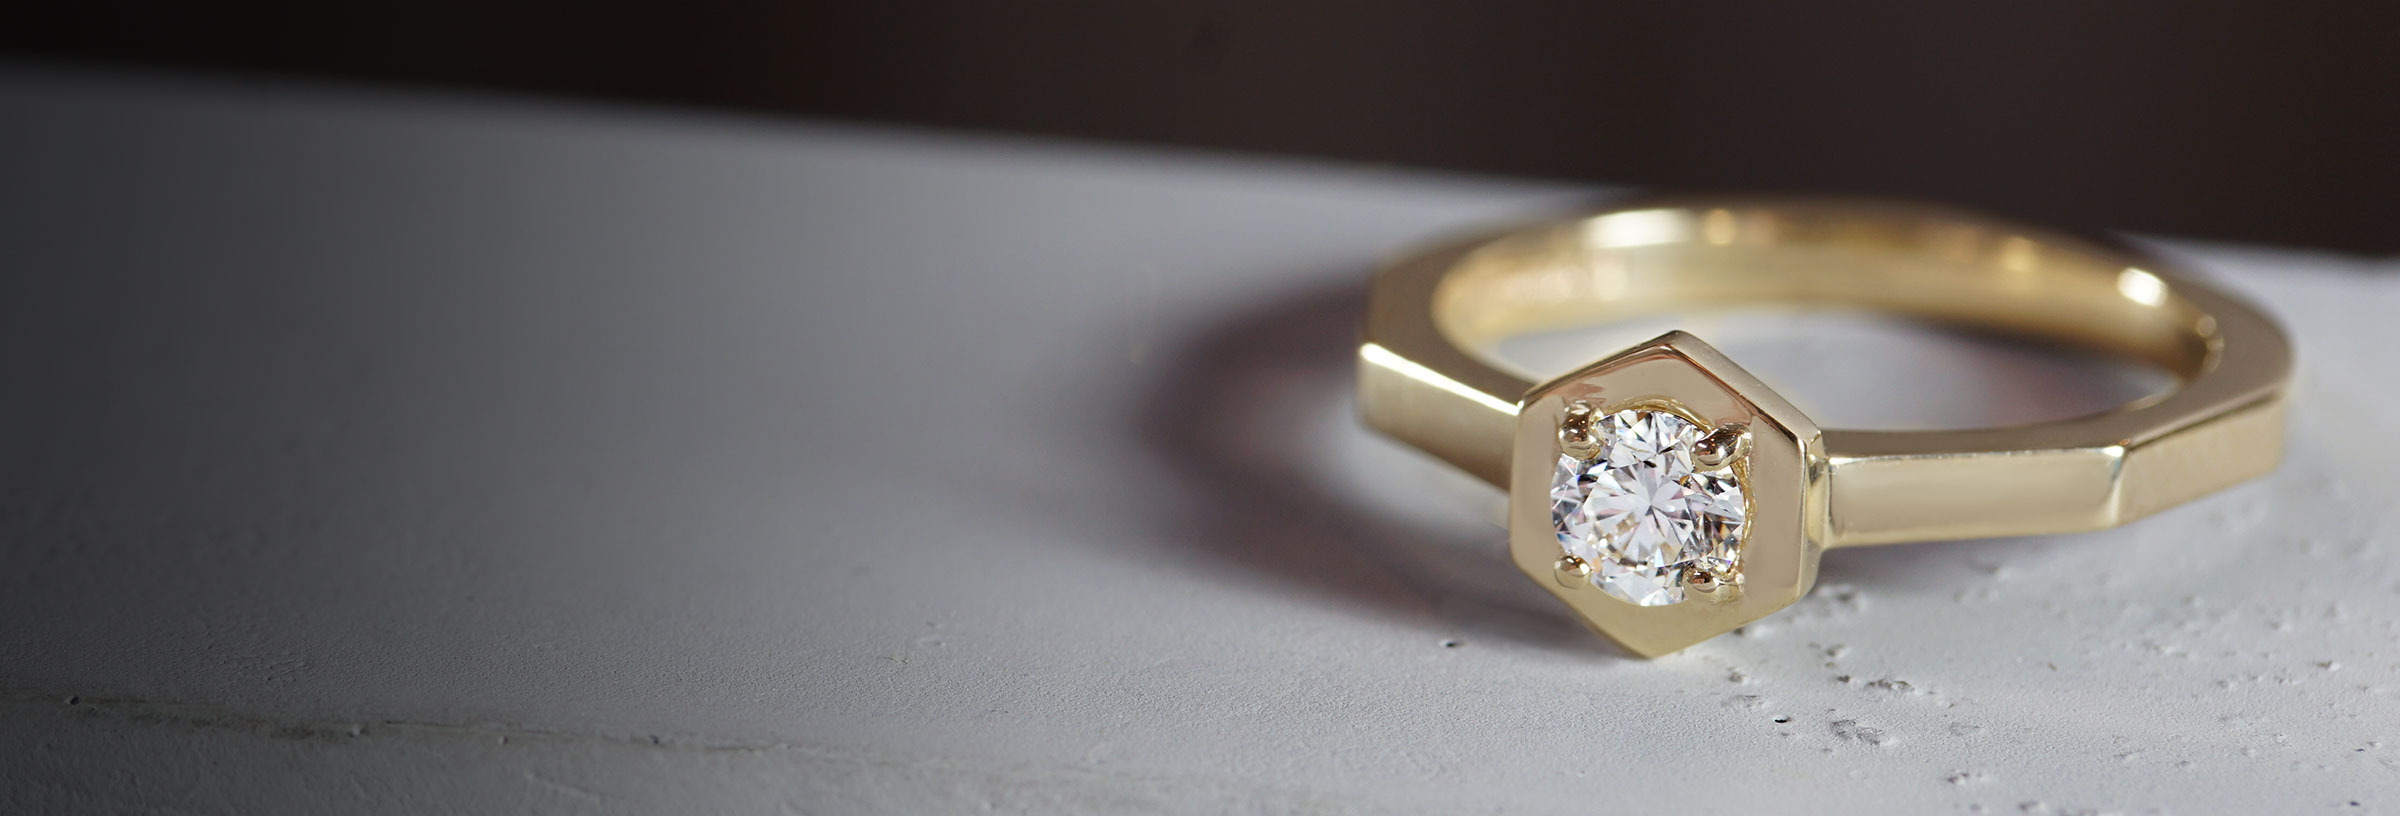 yellow-gold-hexagonal-engagement-ring-with-hexagonal-set-diamond